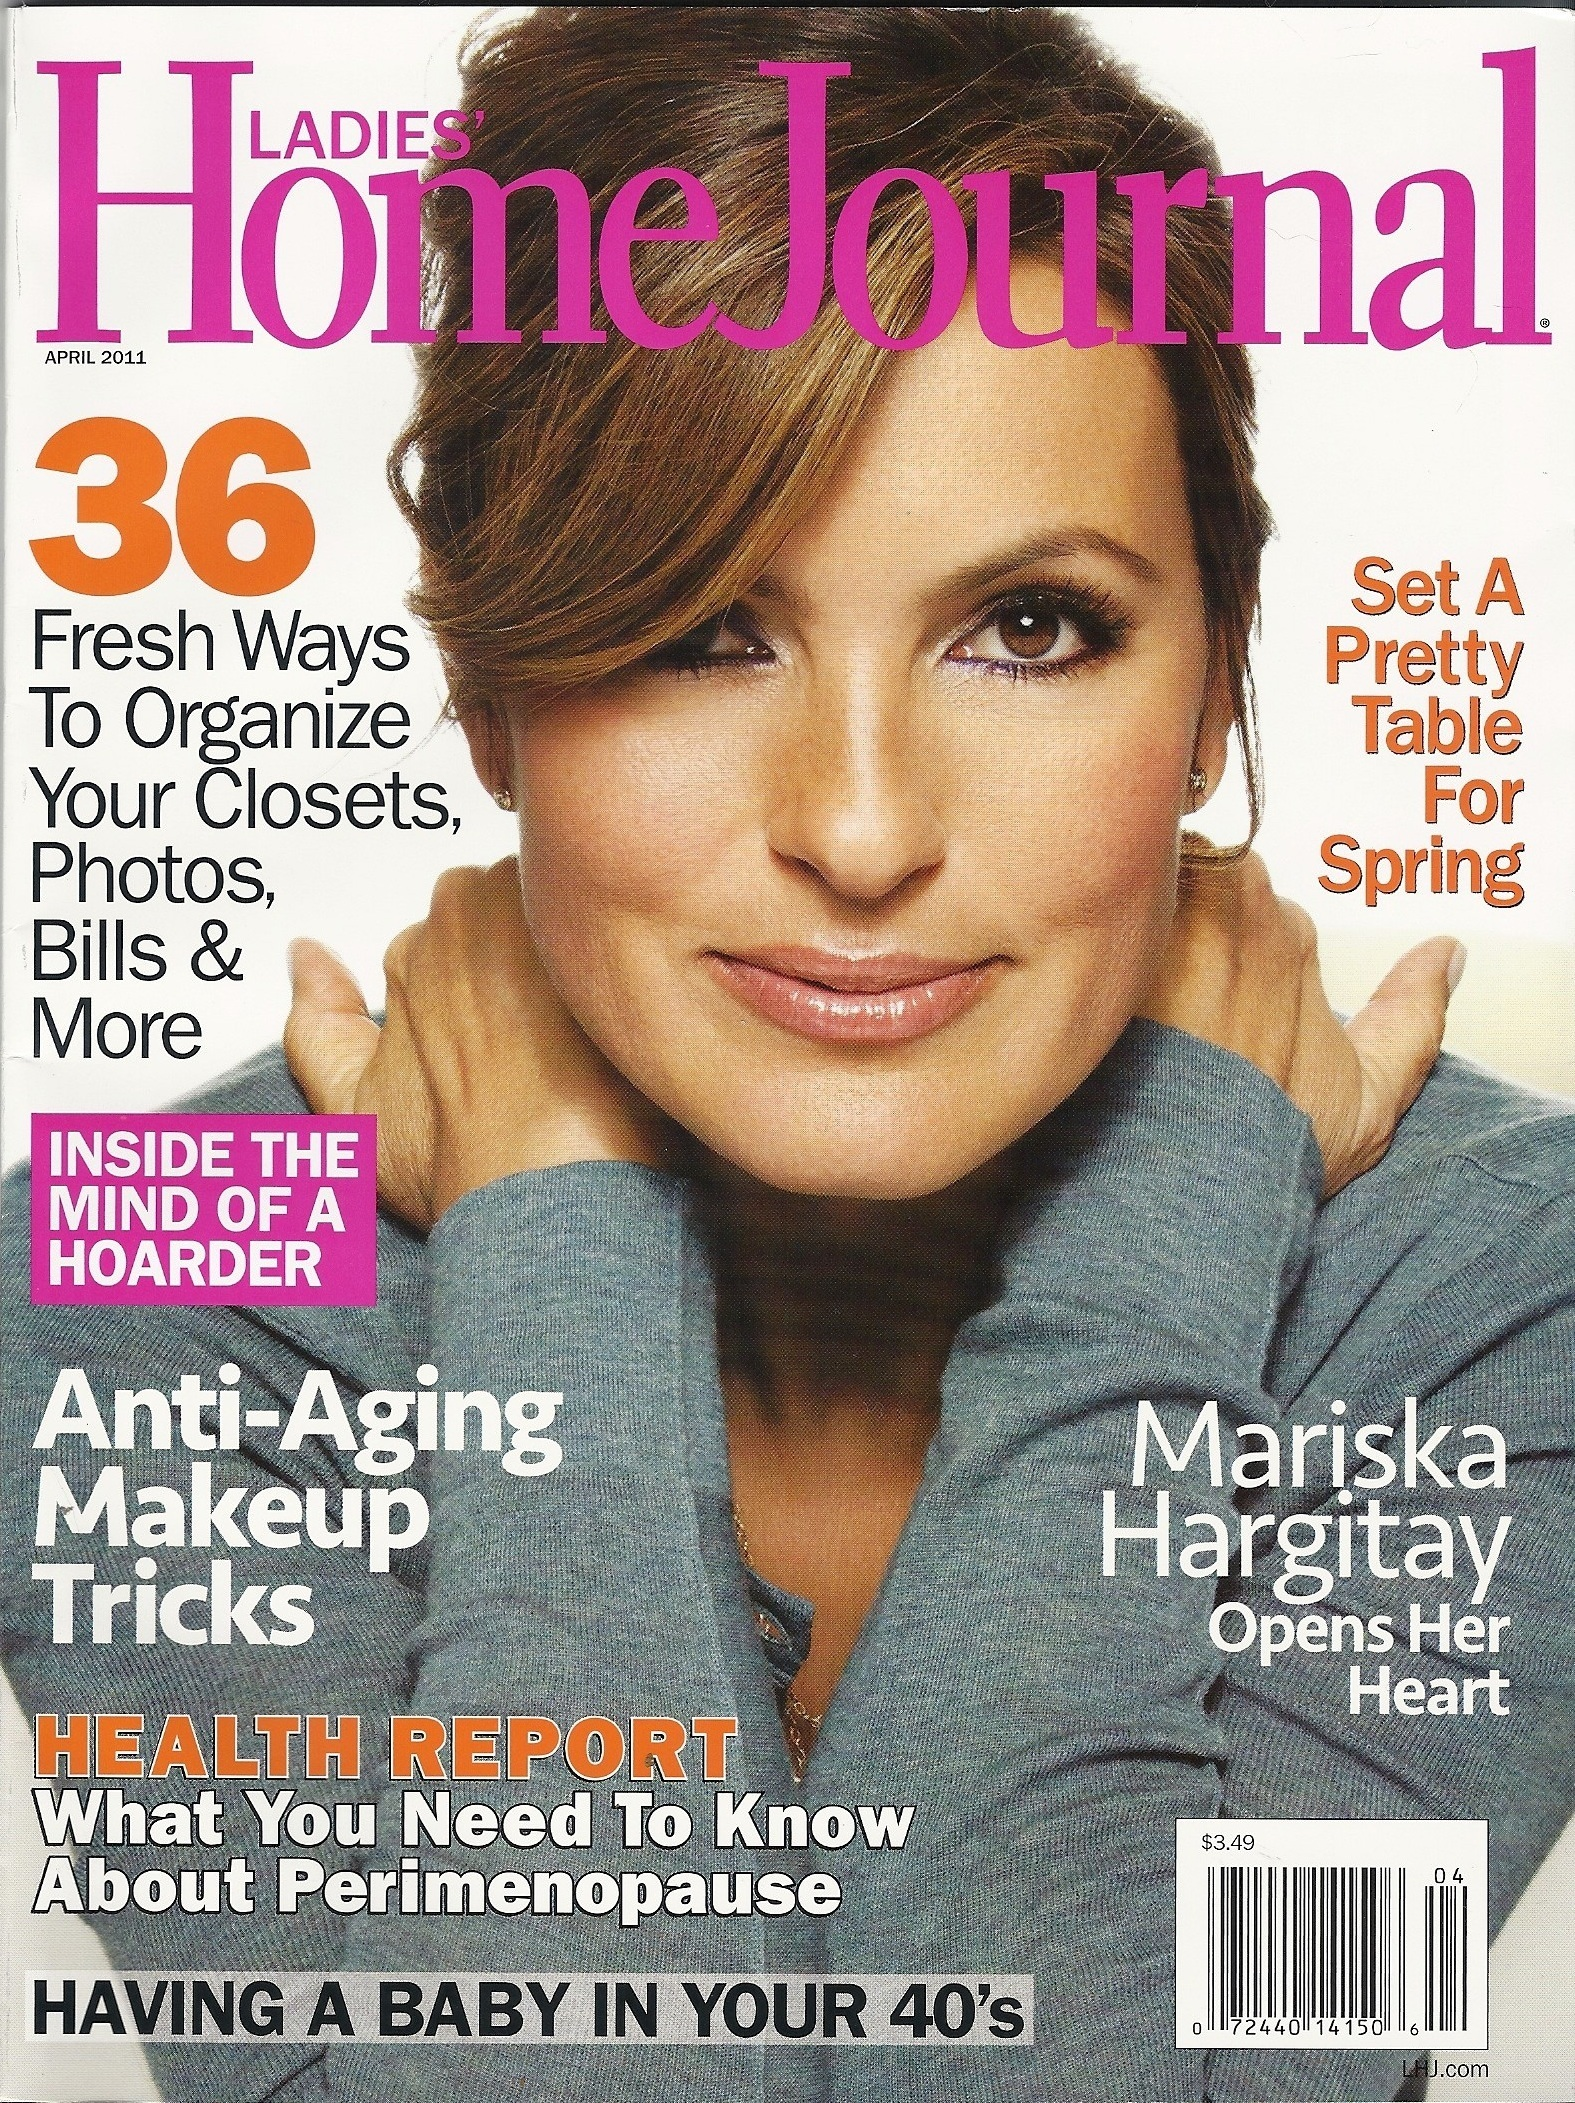 Famous American Actress Mariska Hargitay Modeling For The Cover Of Ladies' Home Journal Modeling As One Of The Highest Paid Actresses In The World. The World's Highest Paid Actresses. The Top Earning Actresses In Hollywood.